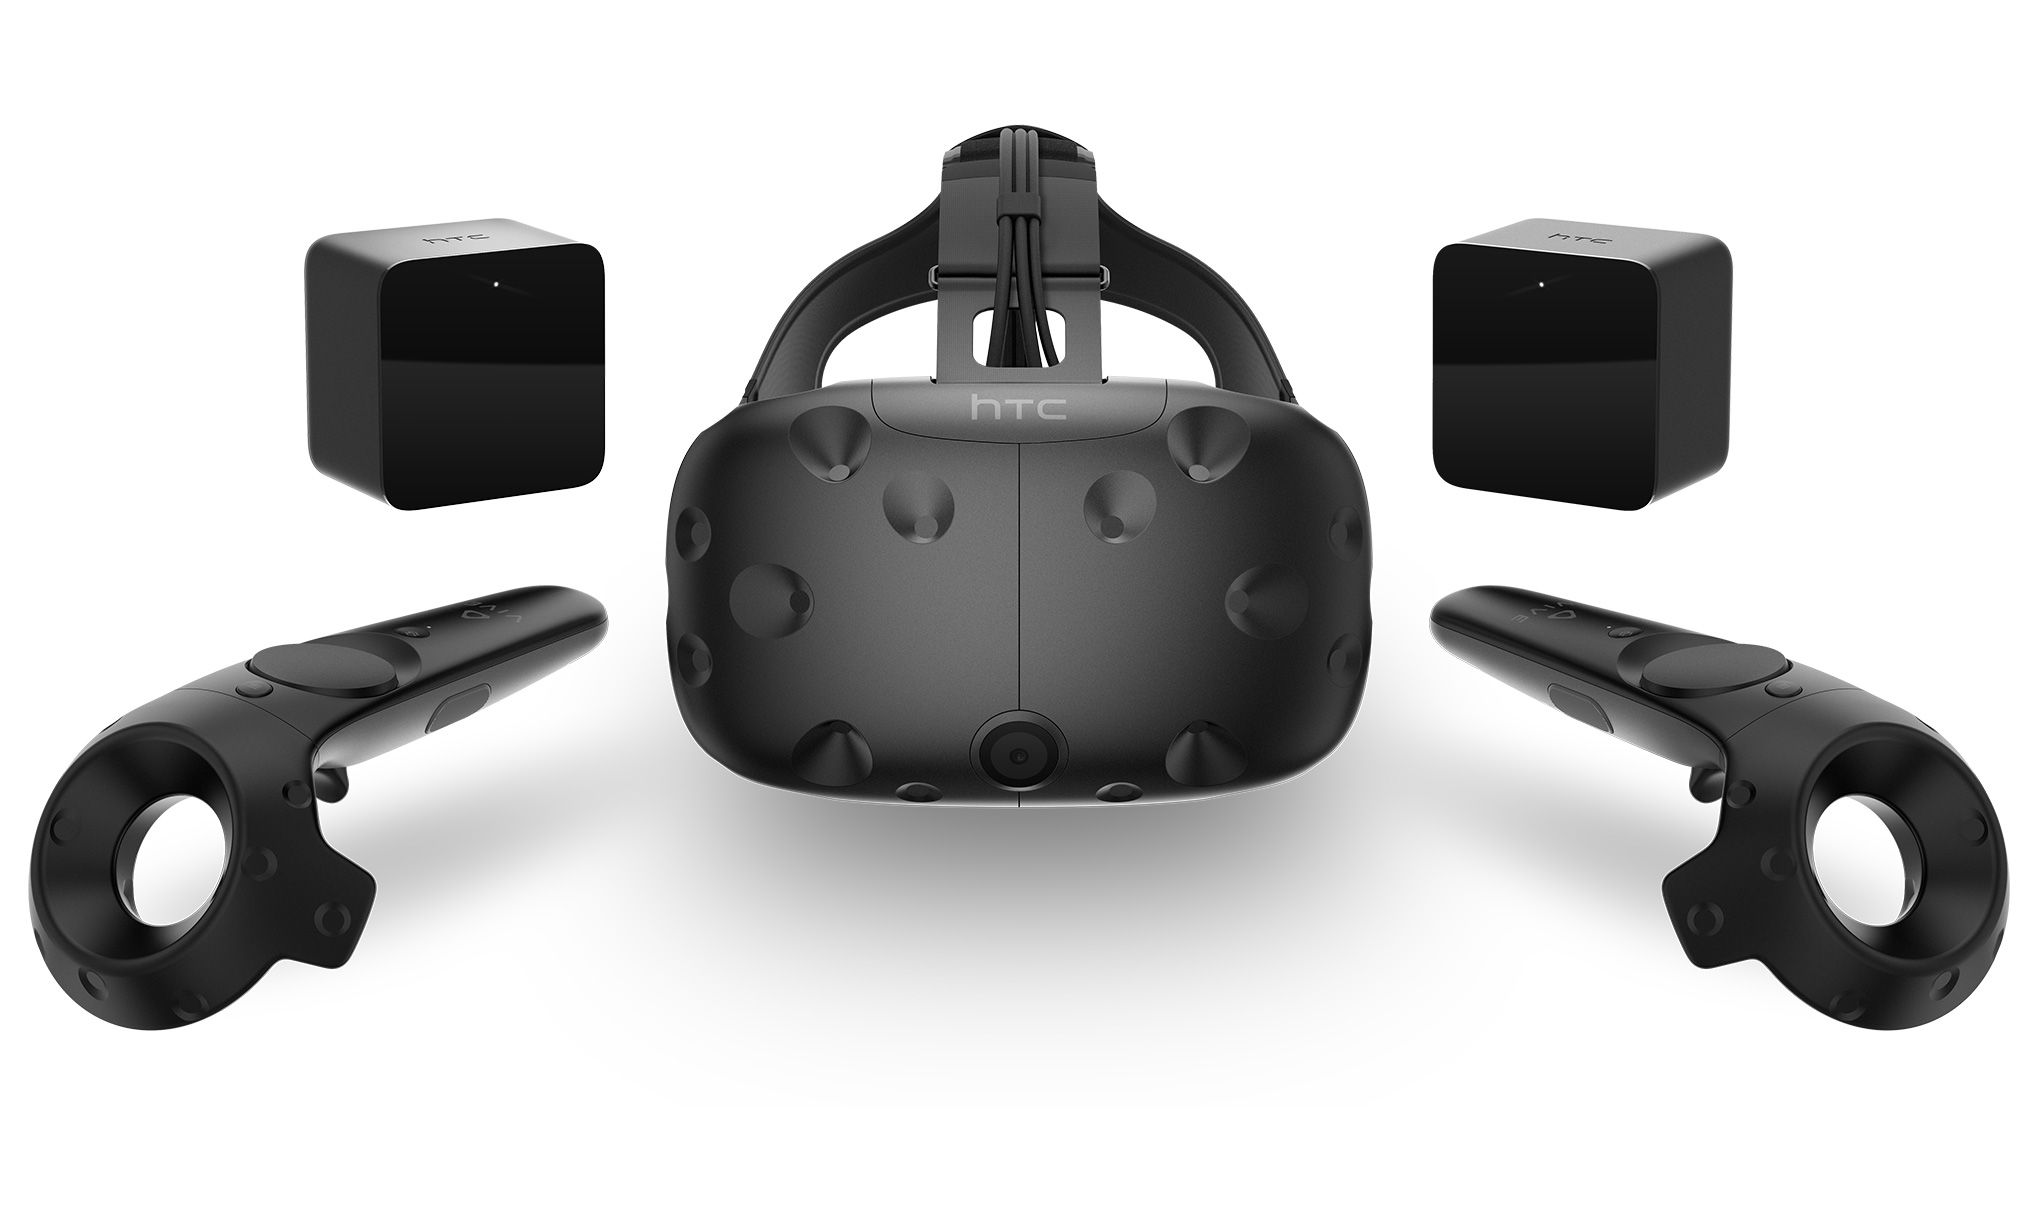 Create a 3D model and demo it in Virtual Reality